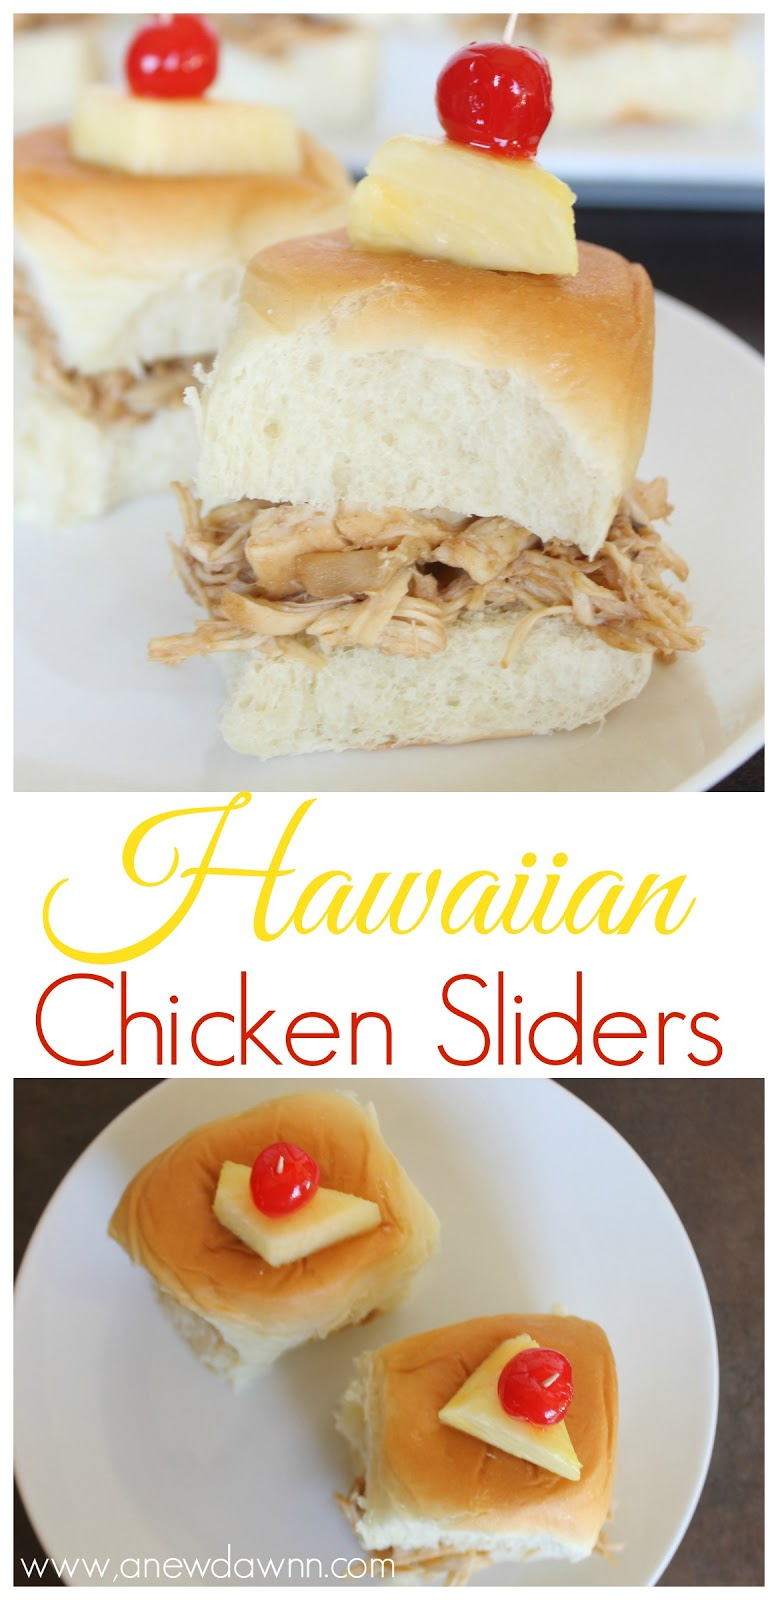 Hawaiian Chicken Sliders